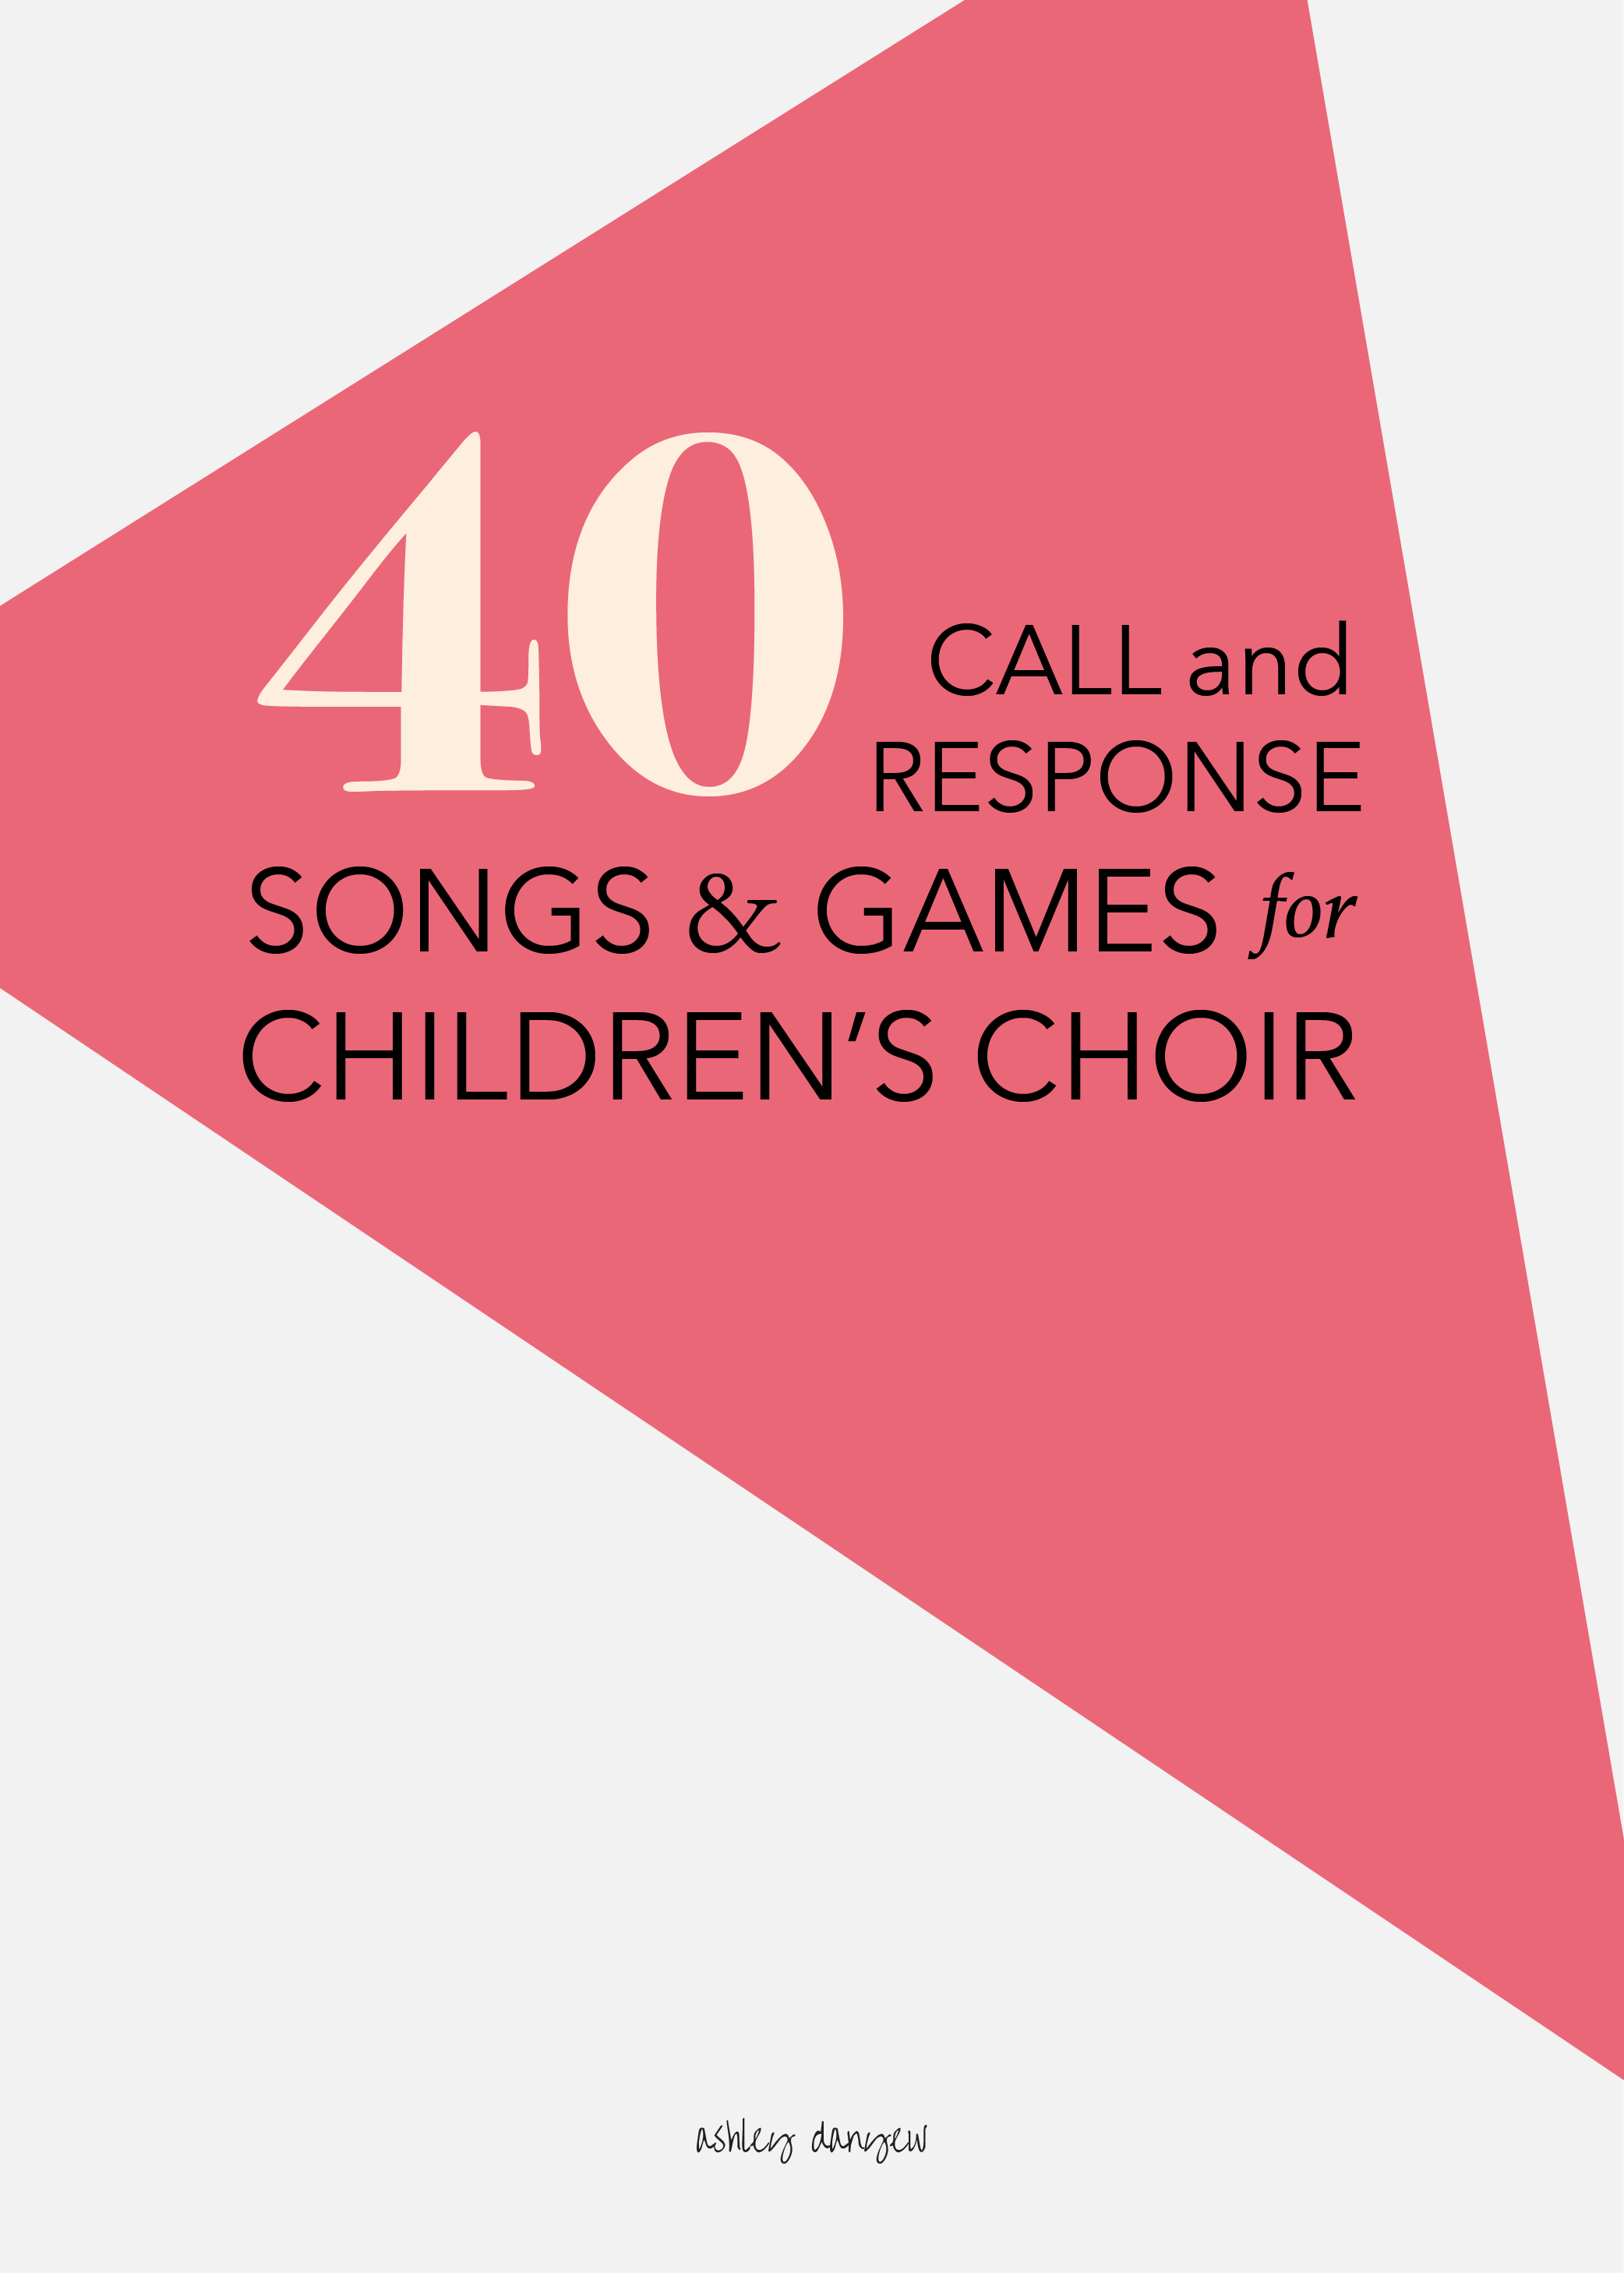 40 Call and Response Songs and Games for Children's Choir